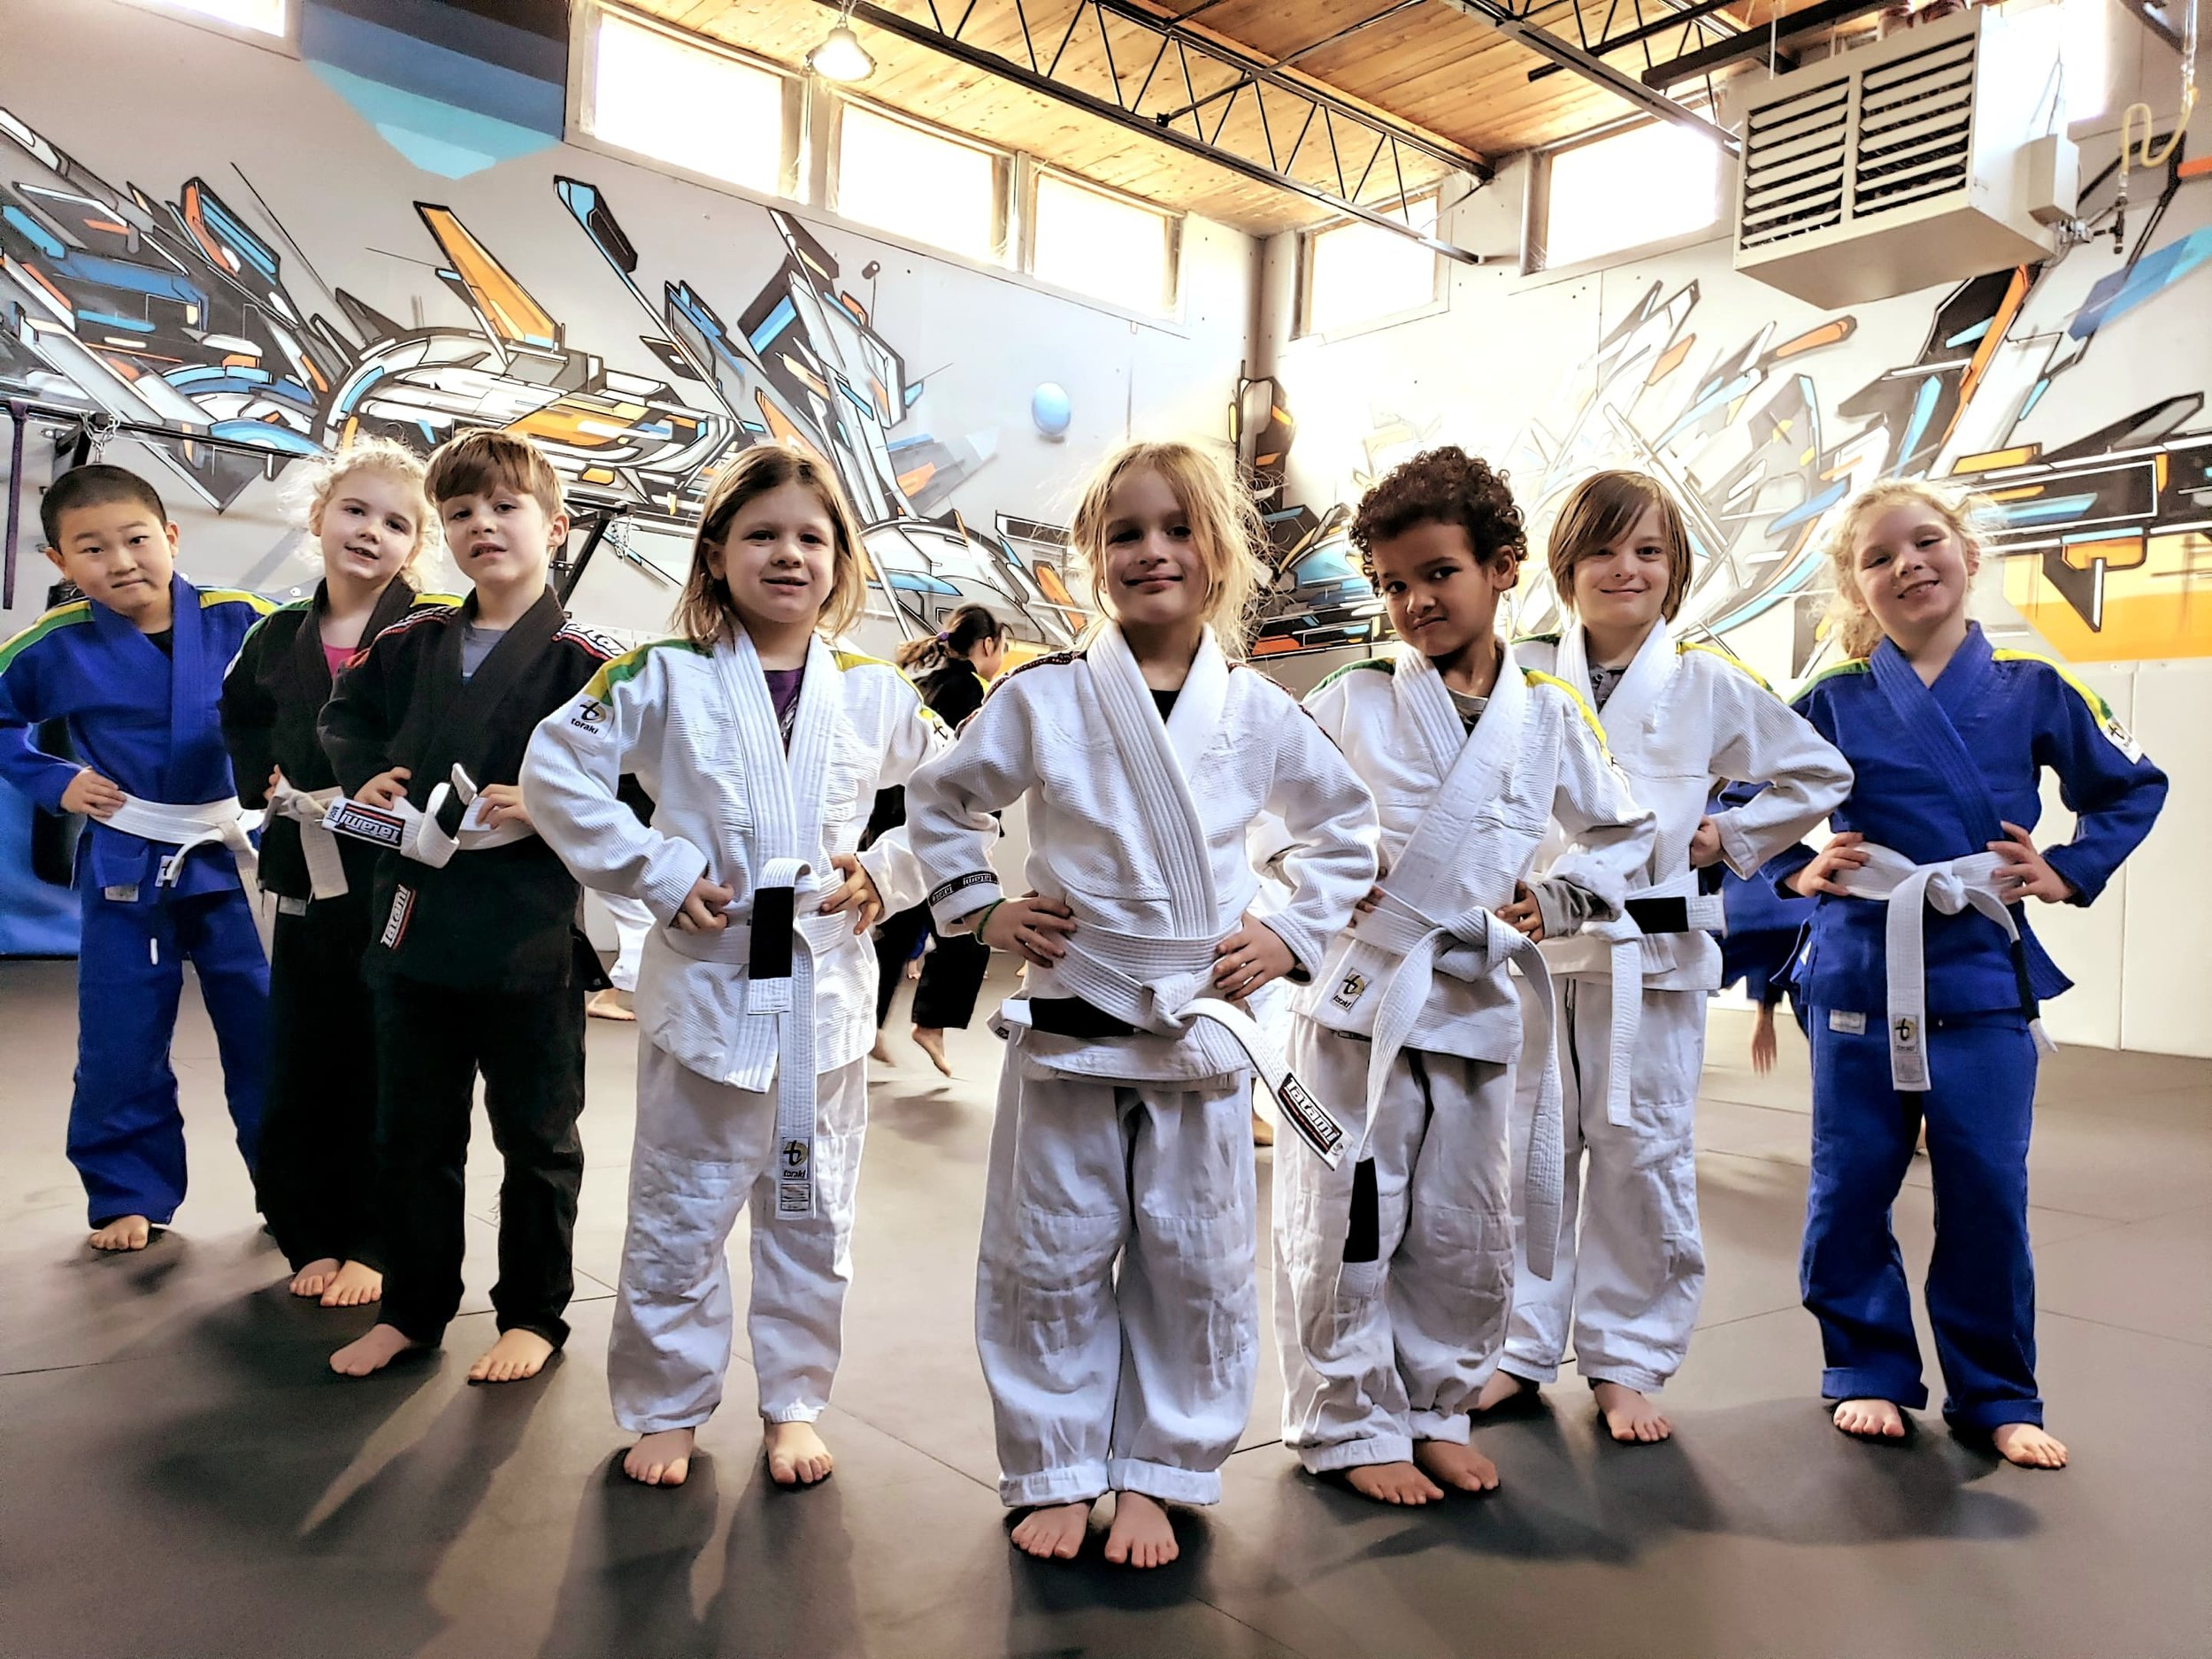 kids-bjj-class-team-fighters